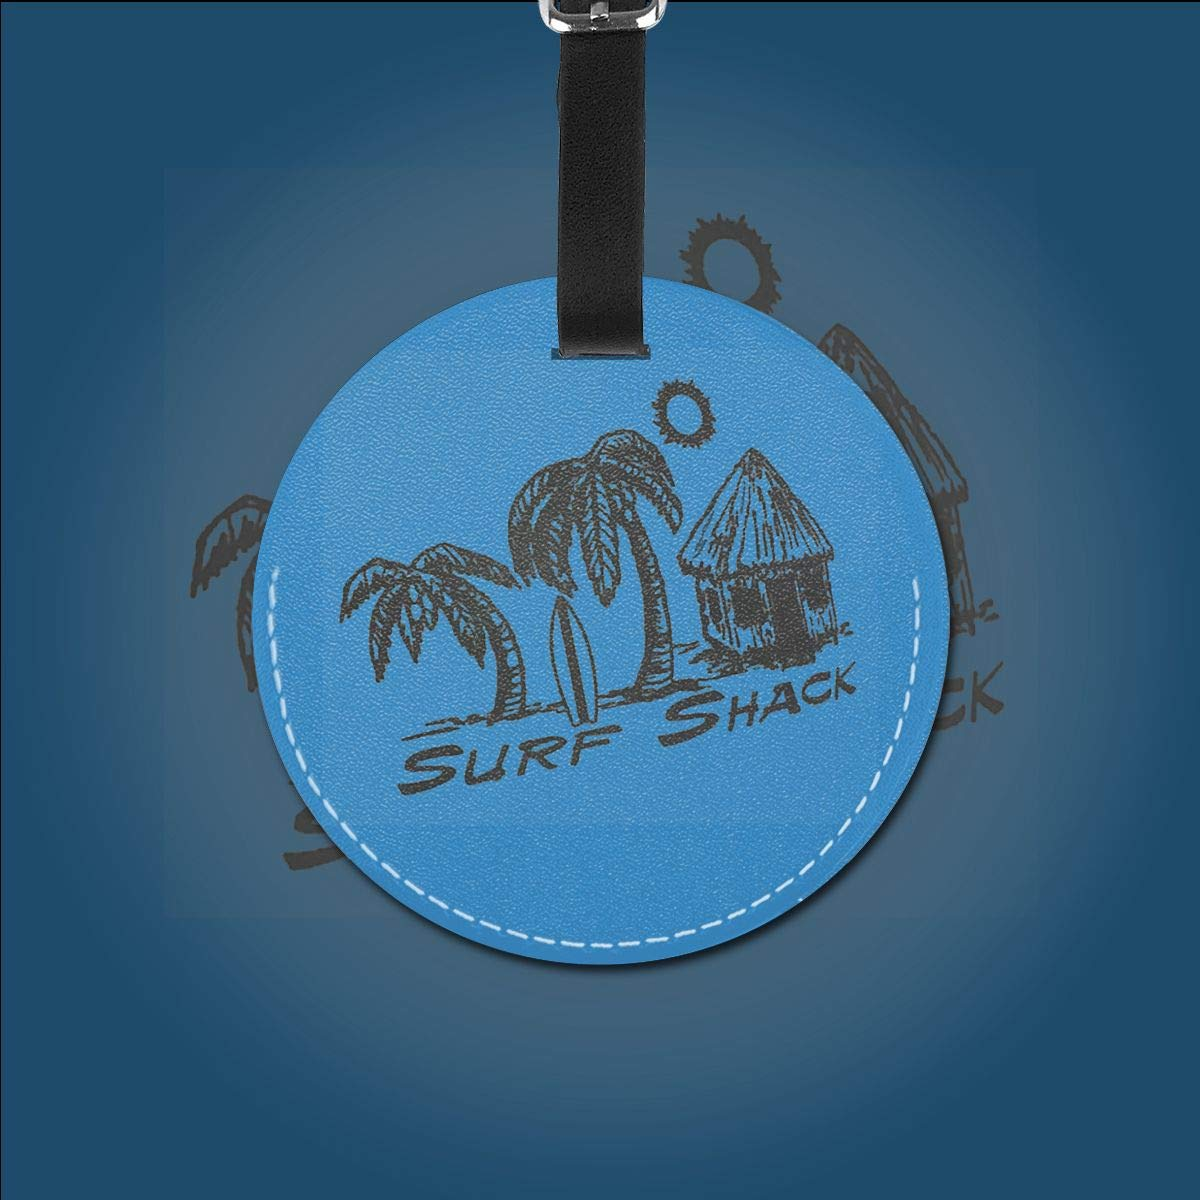 1pcs,2pcs,4pcs Surf Shack Pu Leather Double Sides Print Round Luggage Tag Mutilple Packs